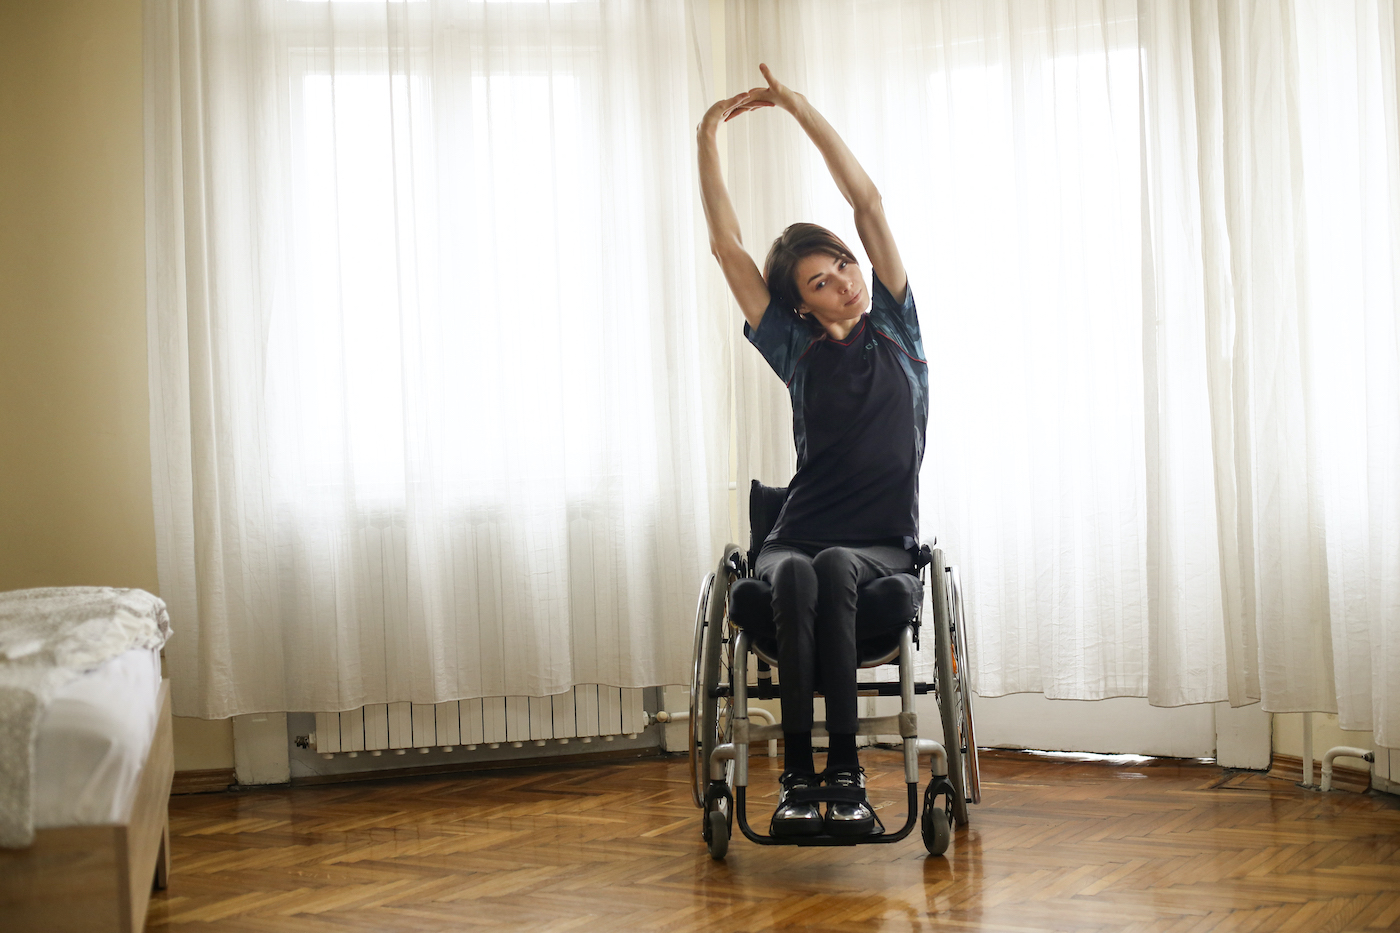 Thumbnail for The Best of the Best YouTube Workouts for People with Limited Mobility